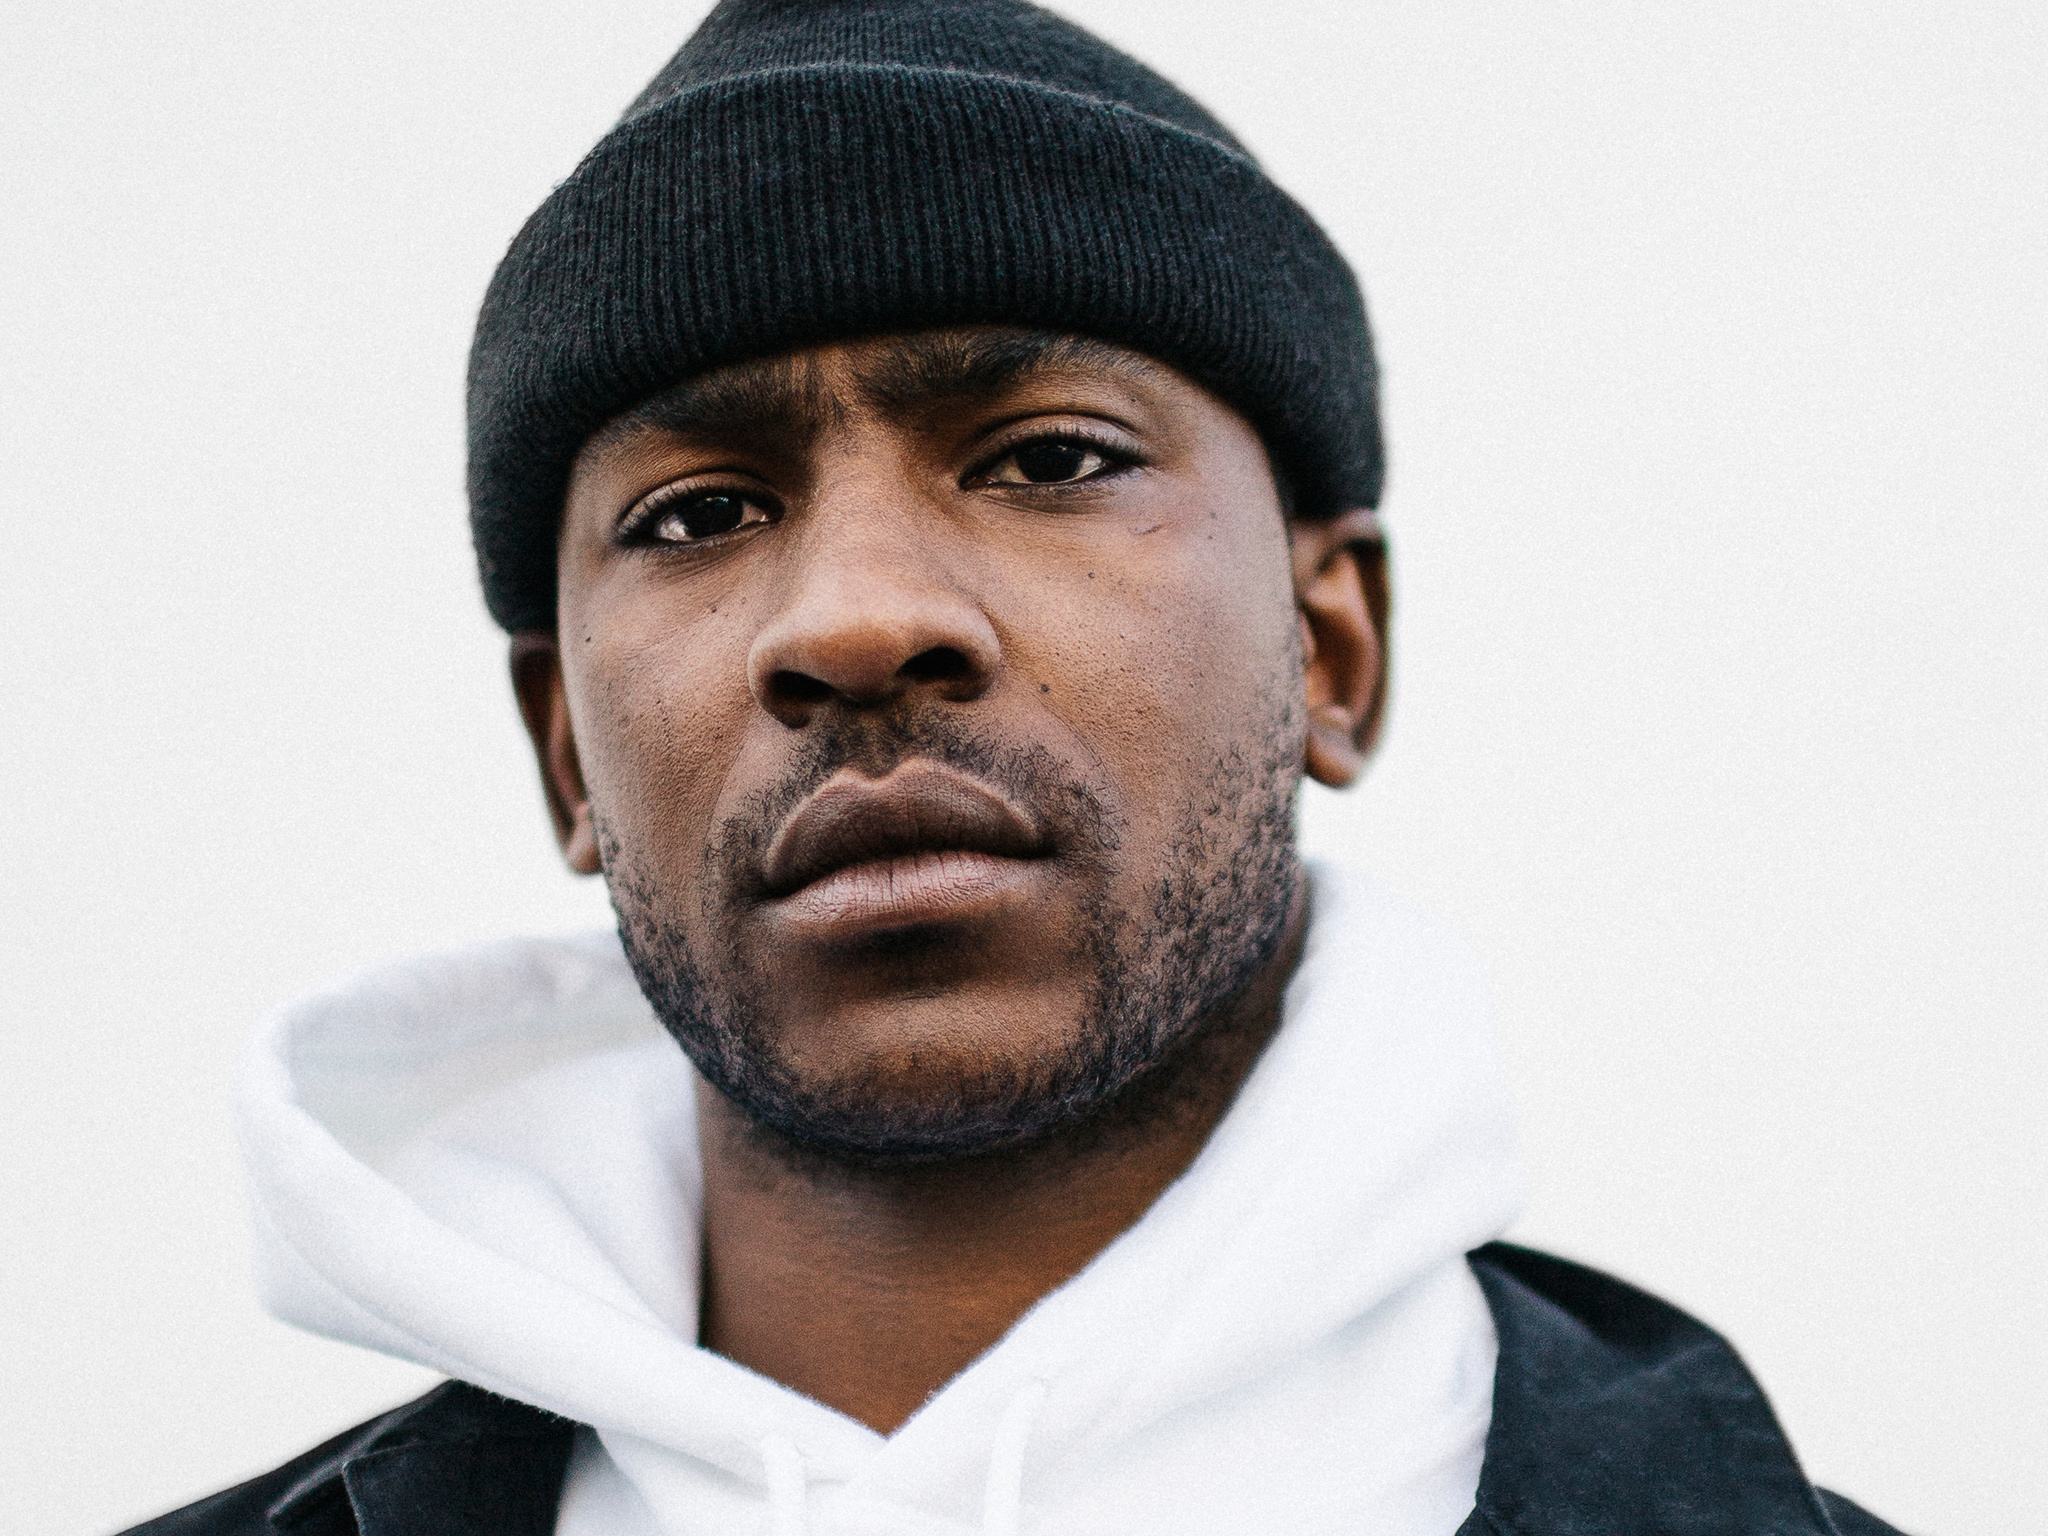 a94c60eac Skepta interview: 'I'm not a rapper, I'm an activist'